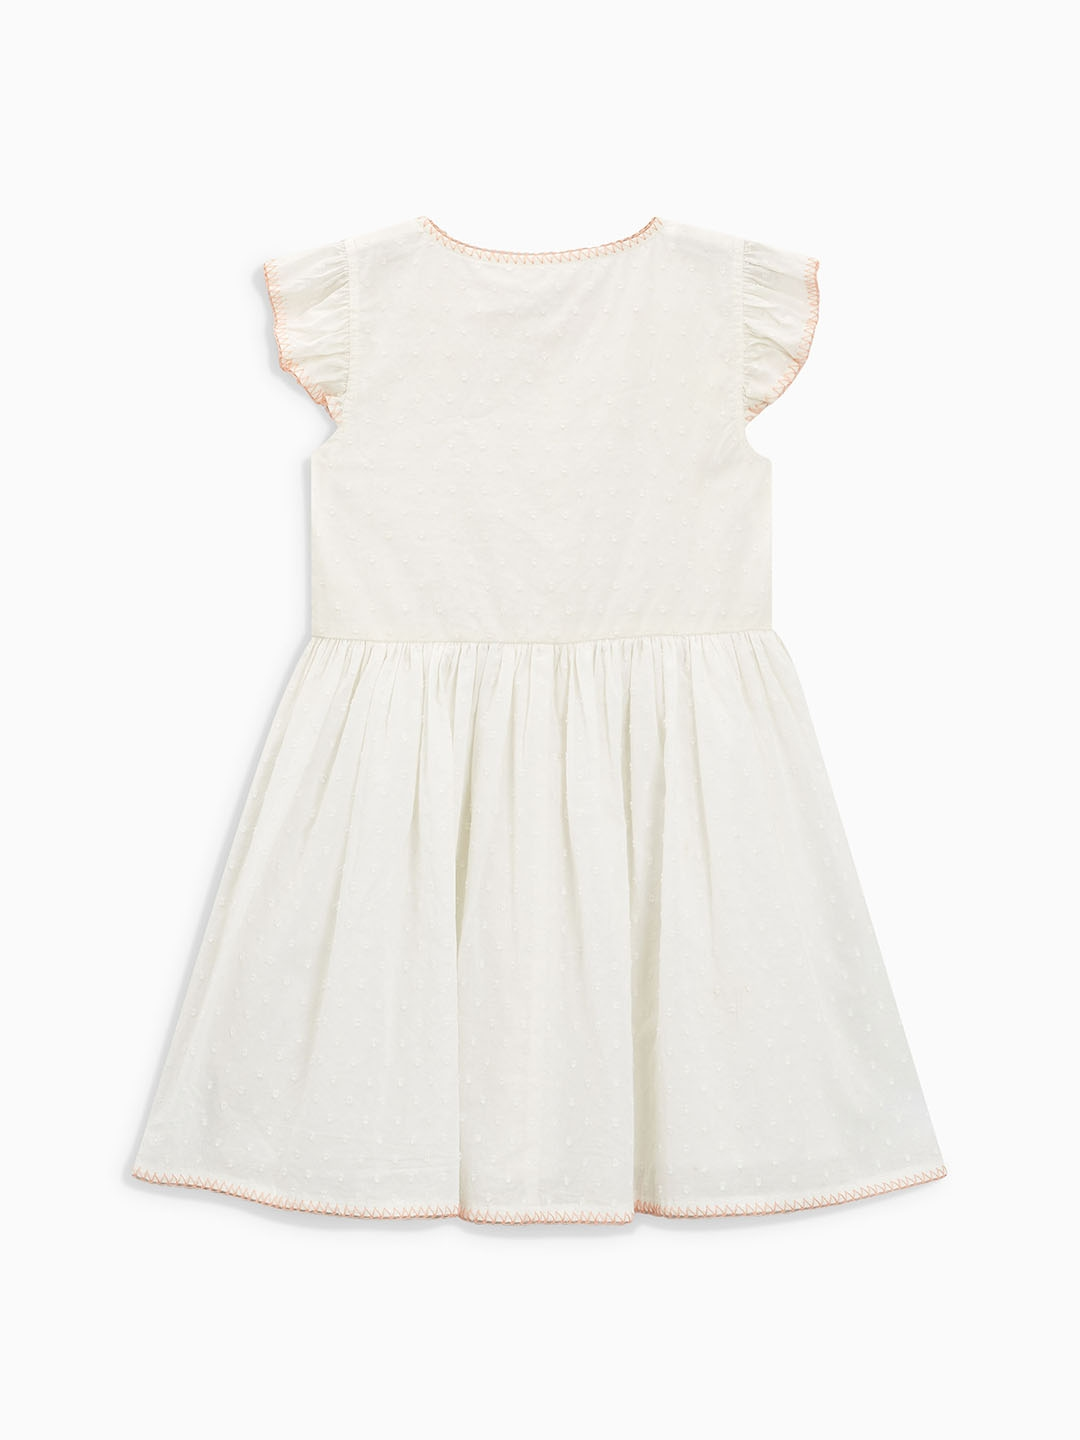 def690fcf3a6 Buy Next Girls White Embroidered Fit   Flare Dress - Dresses for ...